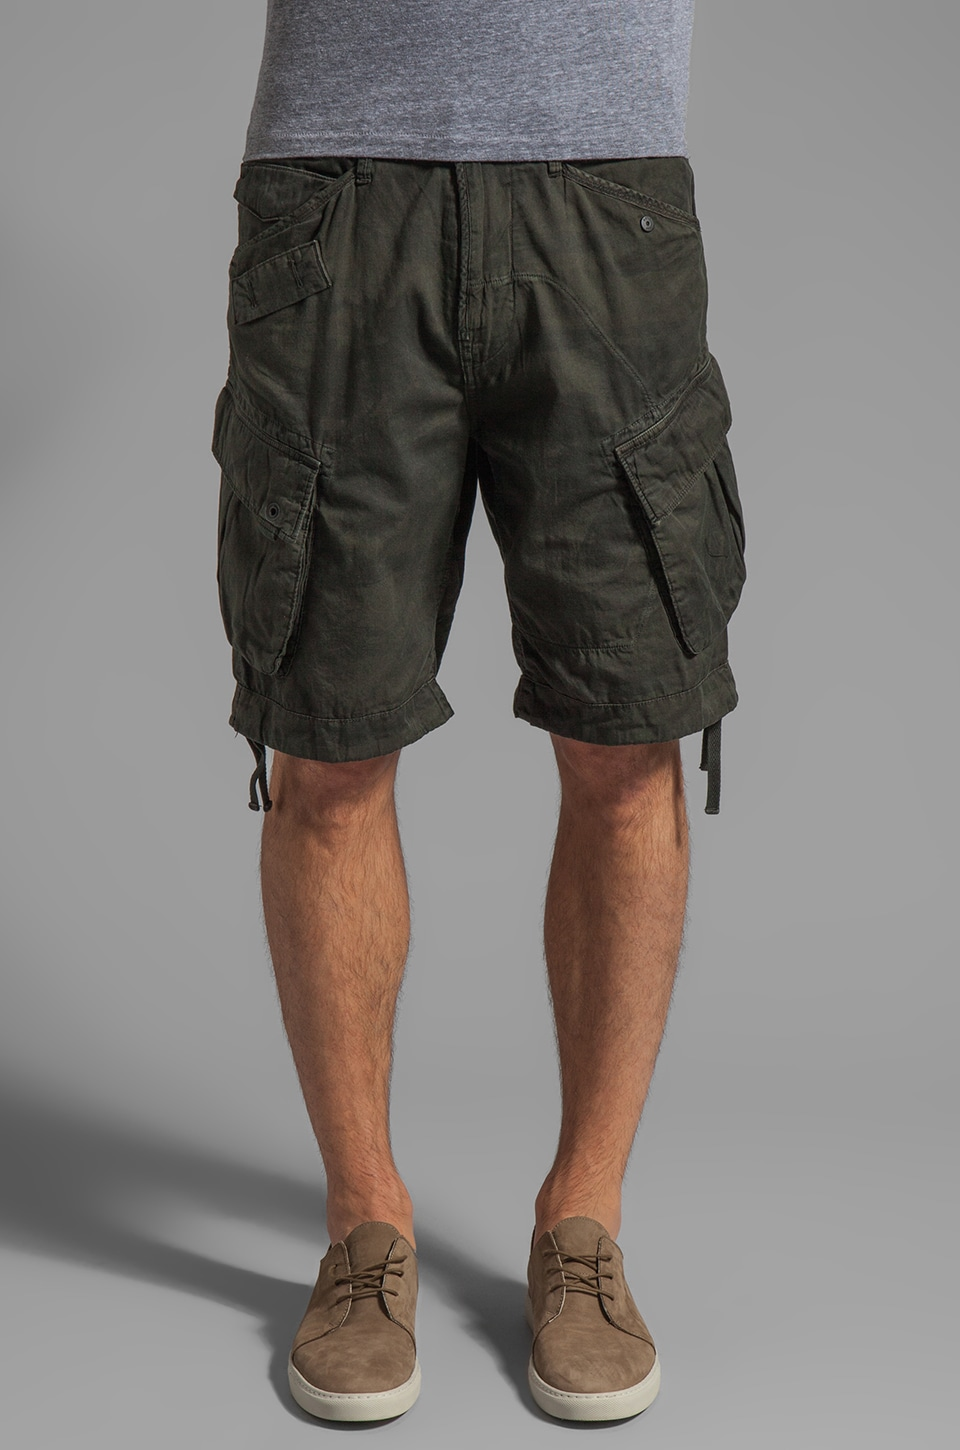 G-Star Palm Rovic Loose Short in Combat